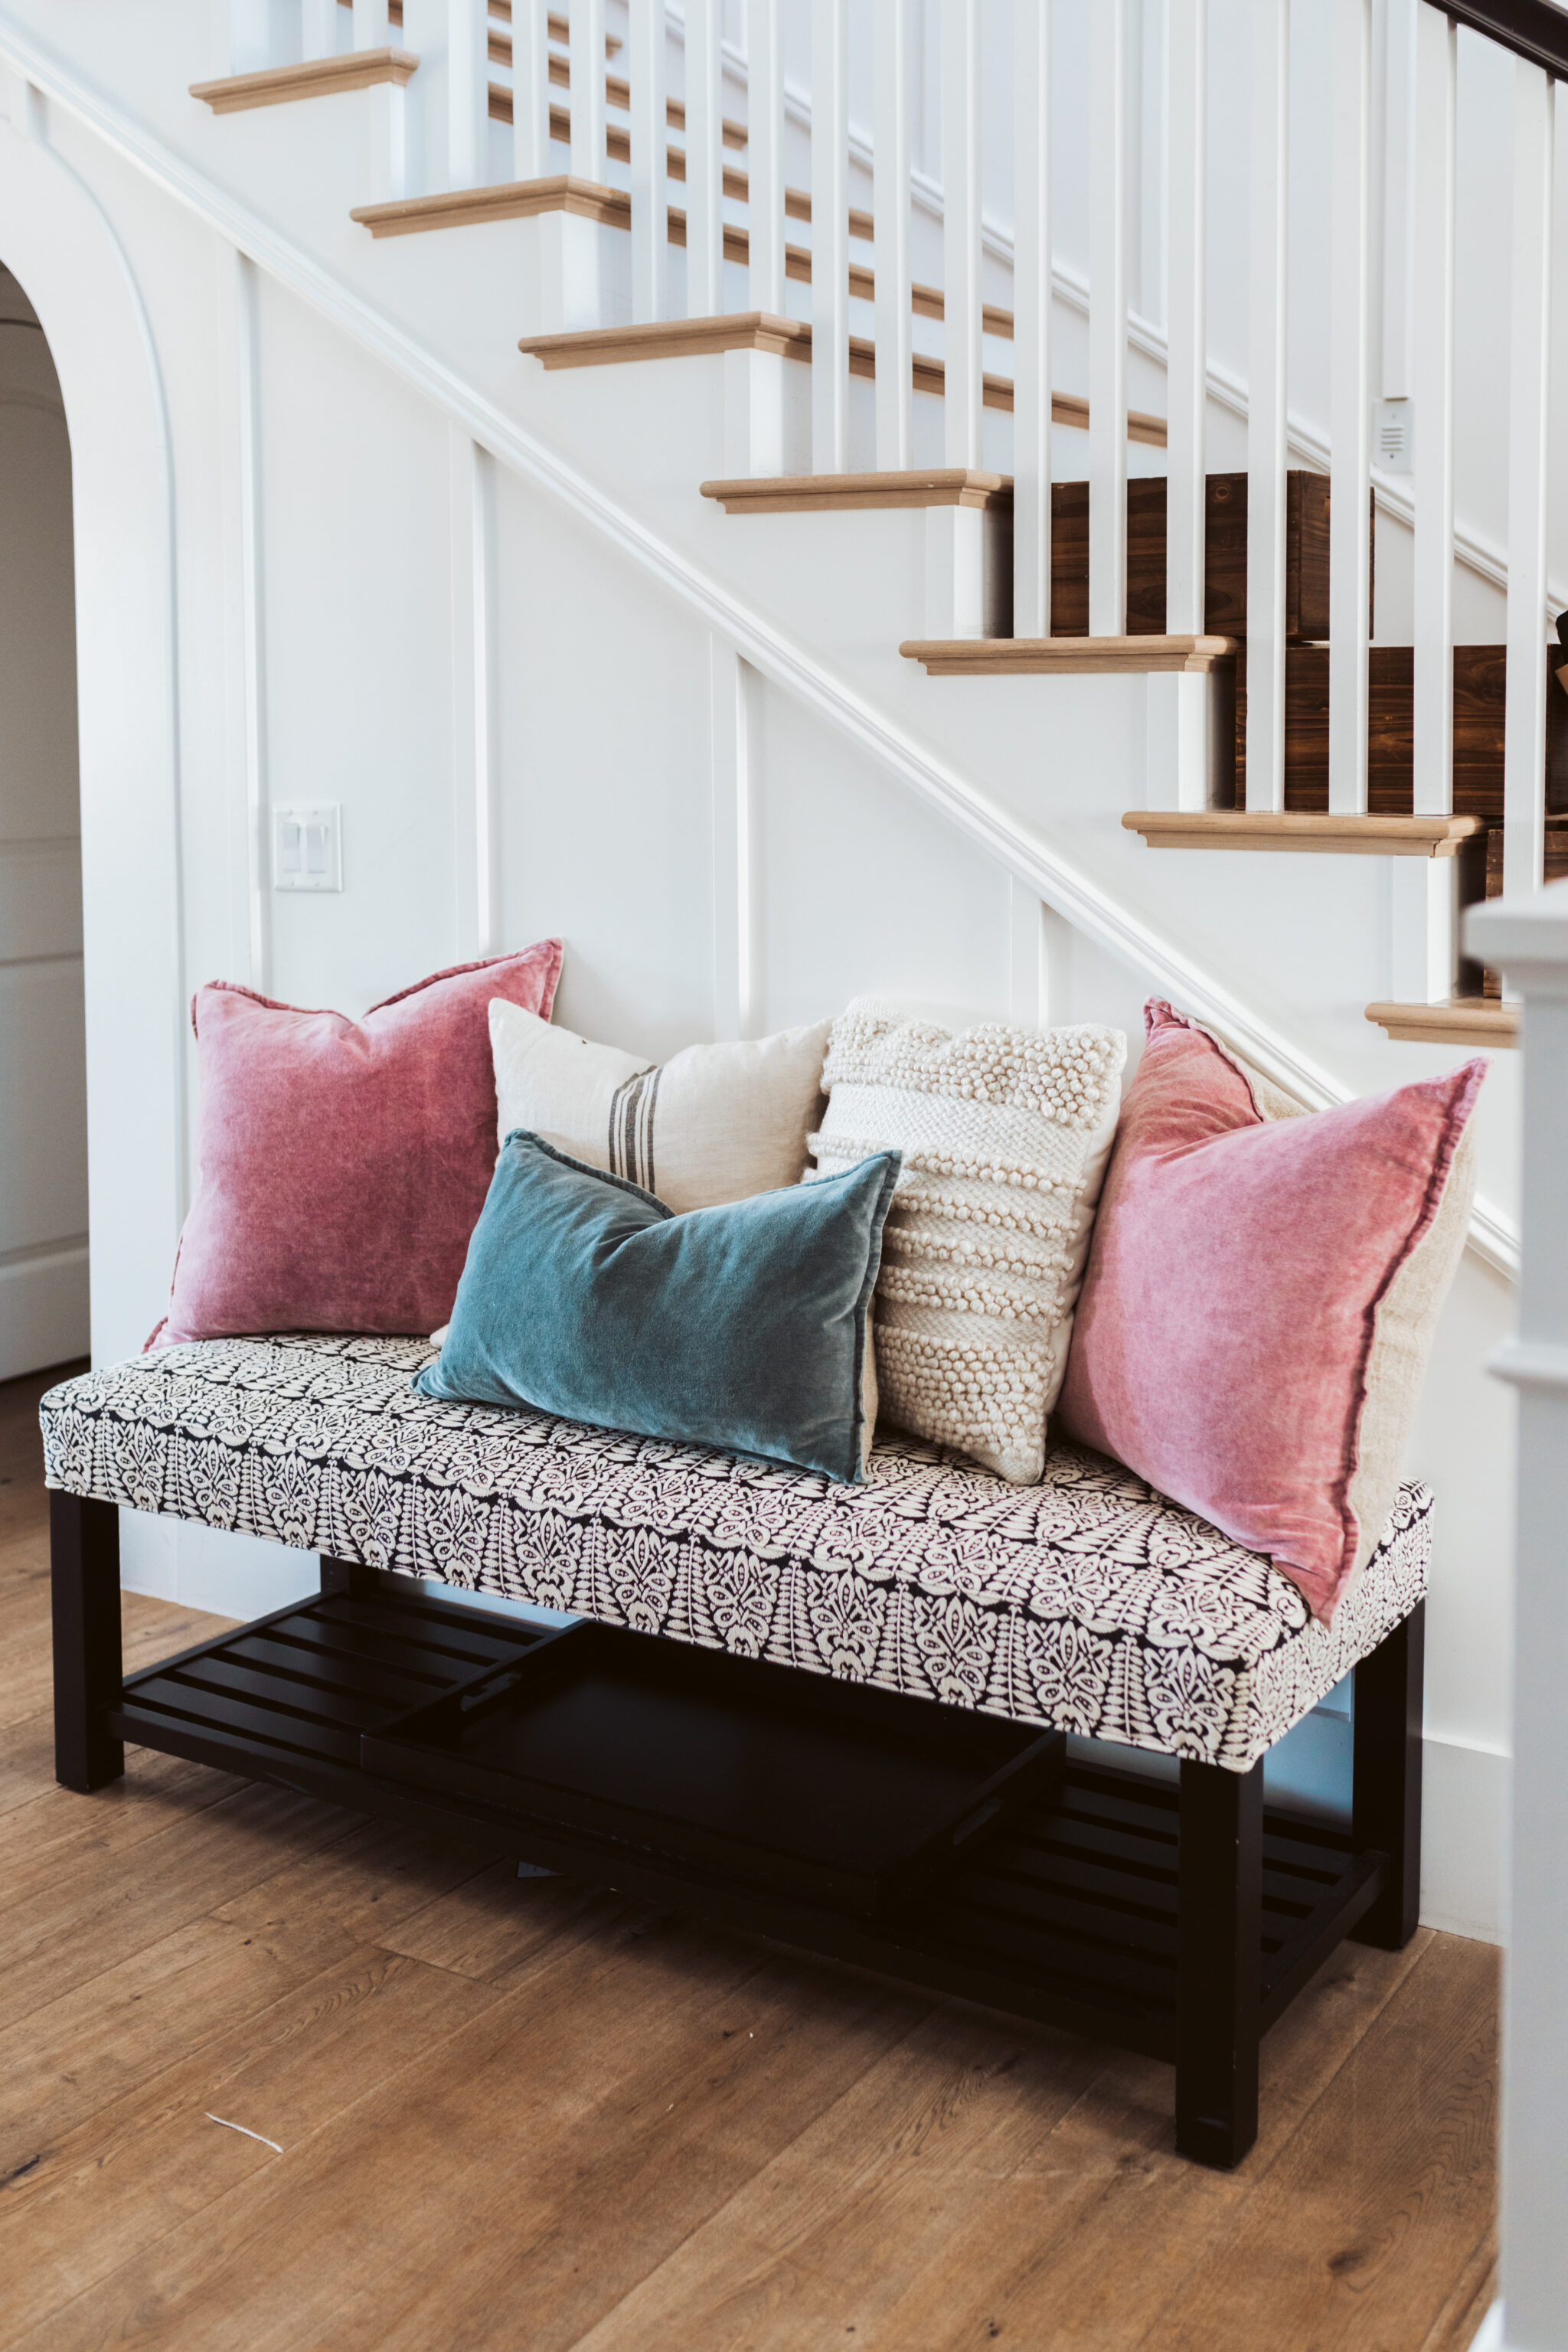 pillows on bench